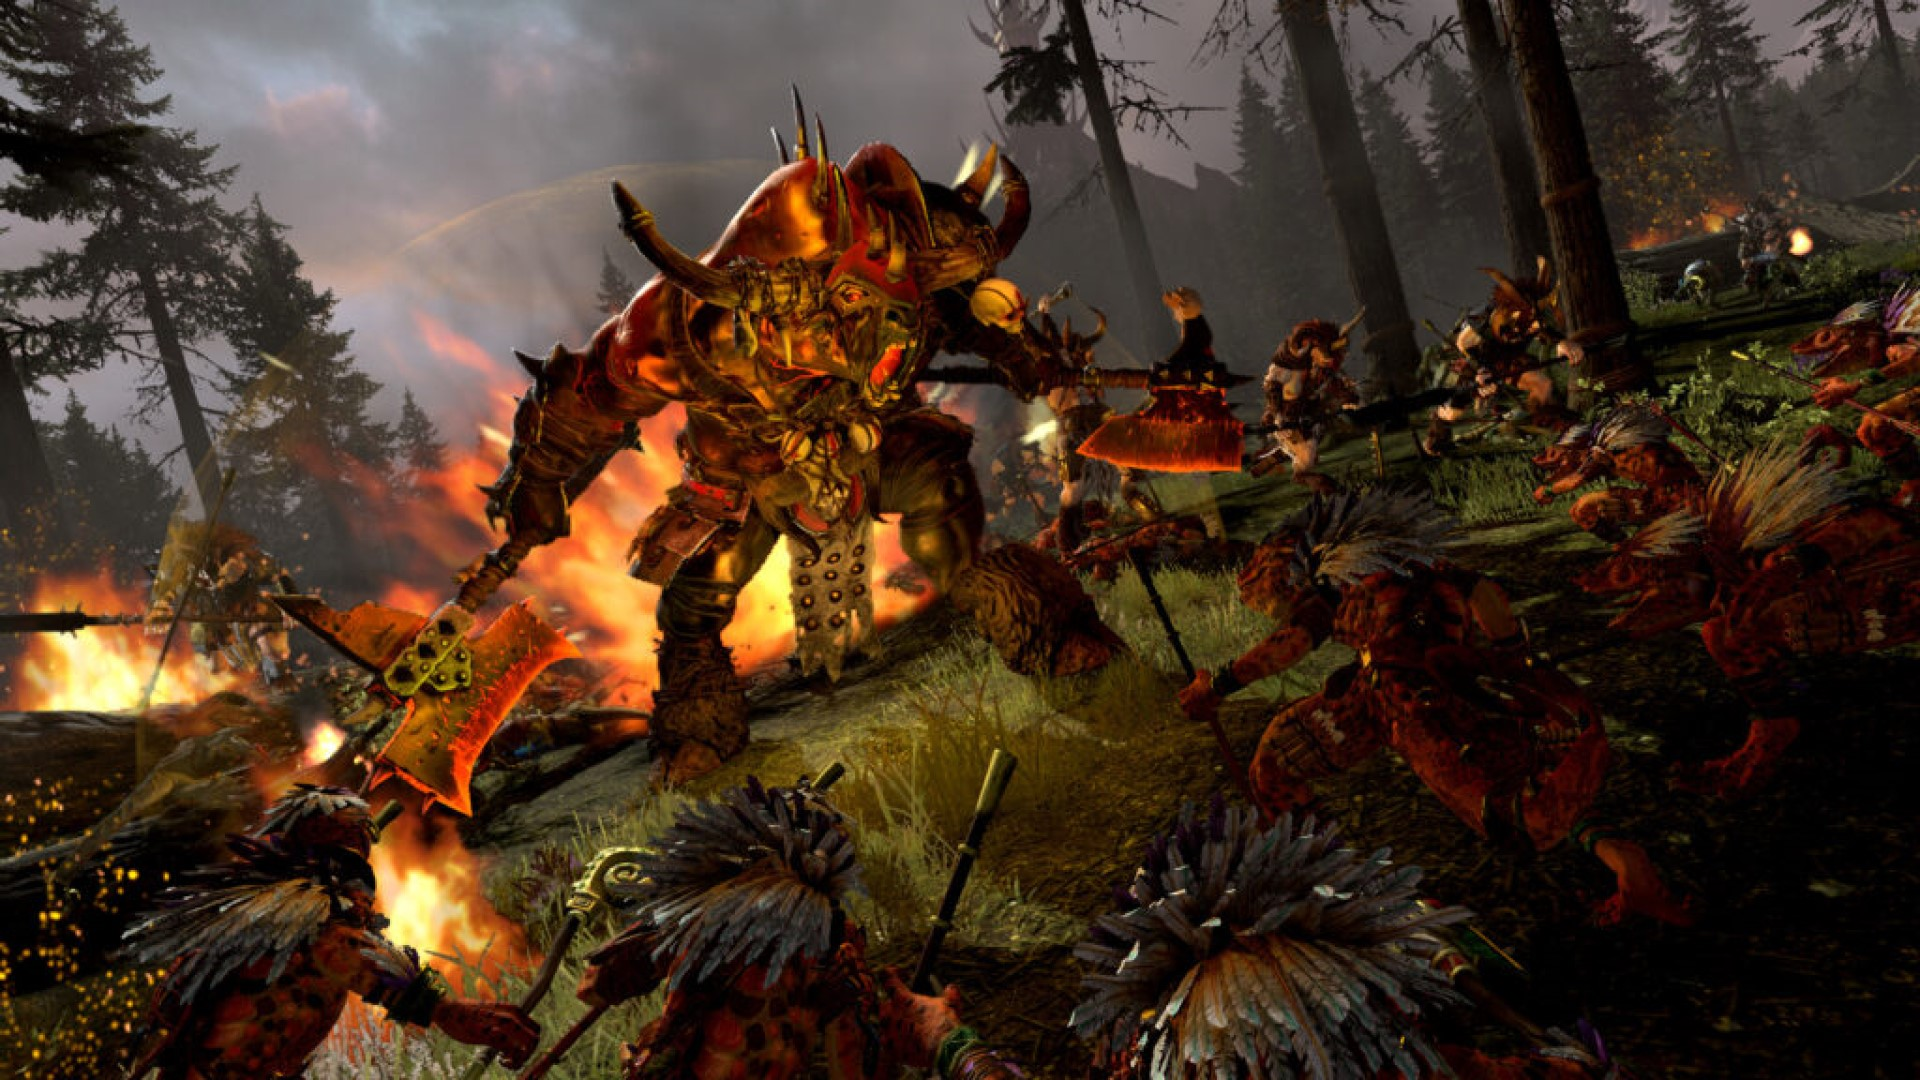 Total War: Warhammer 2's new Beastmen campaign mechanics have been revealed